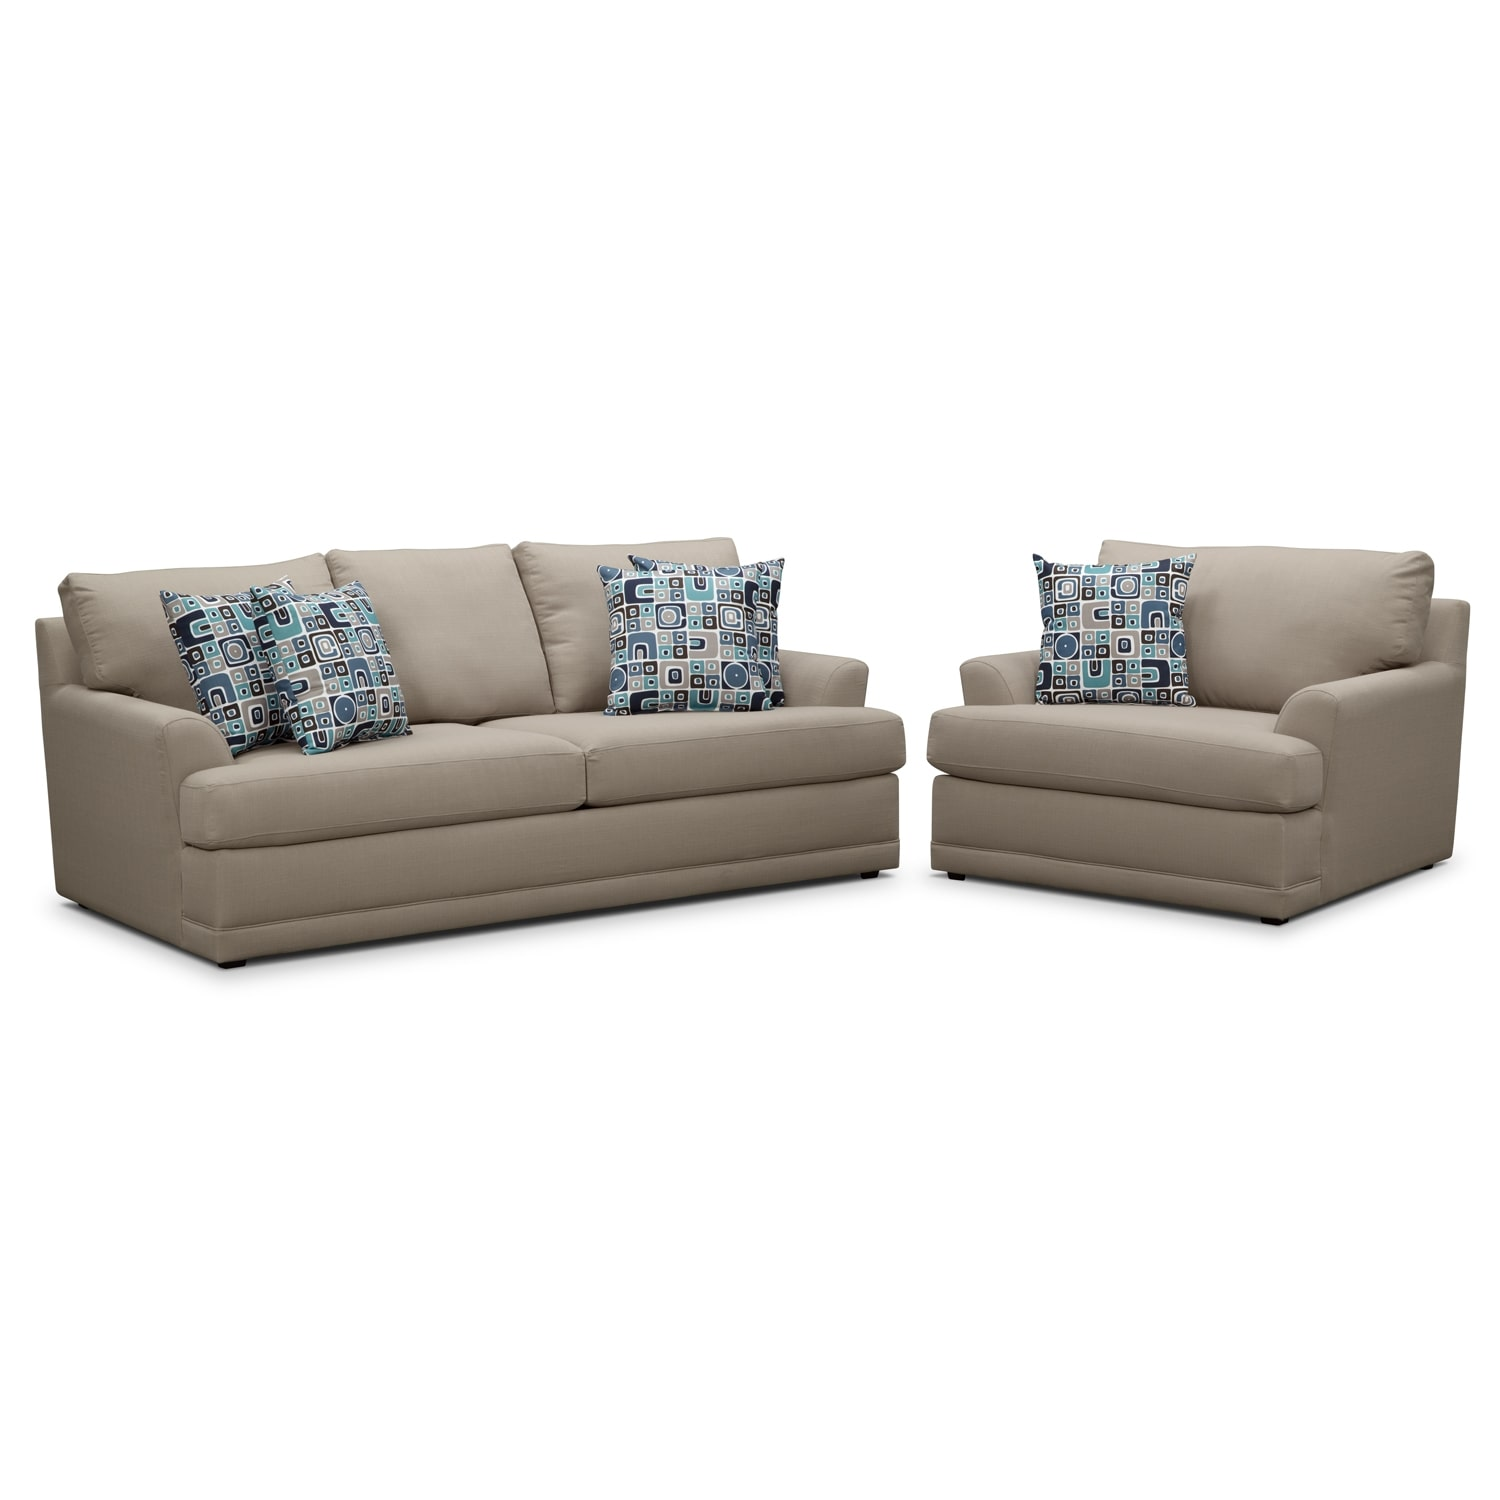 Living Room Furniture - Kismet 2 Pc. Sleeper Living Room with Chair and a Half and Memory Foam Mattress - Gray